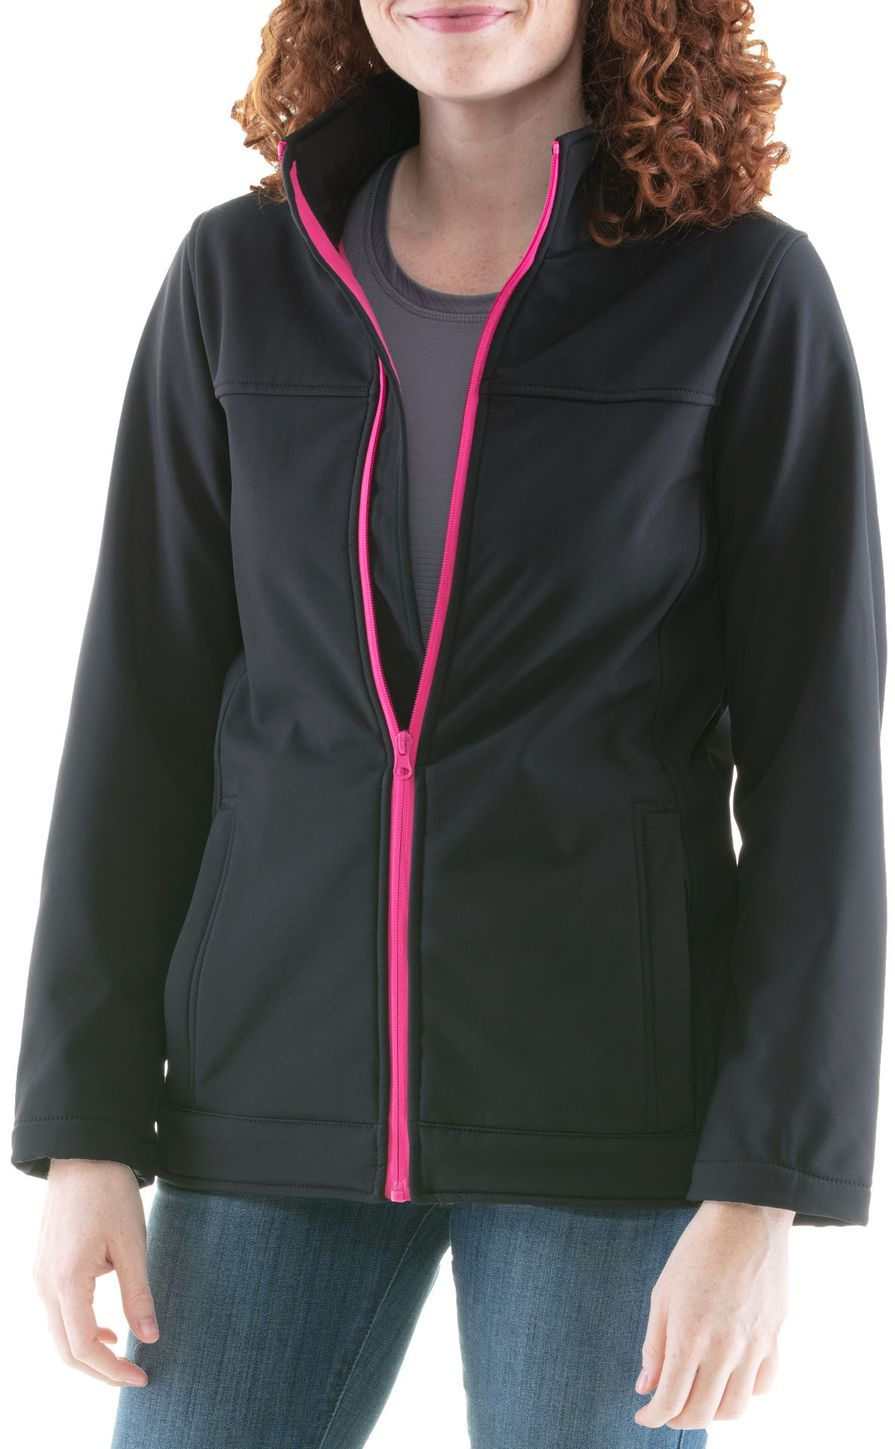 RefrigiWear 0498 - Softshell Collection Womens Softshell Jacket Example